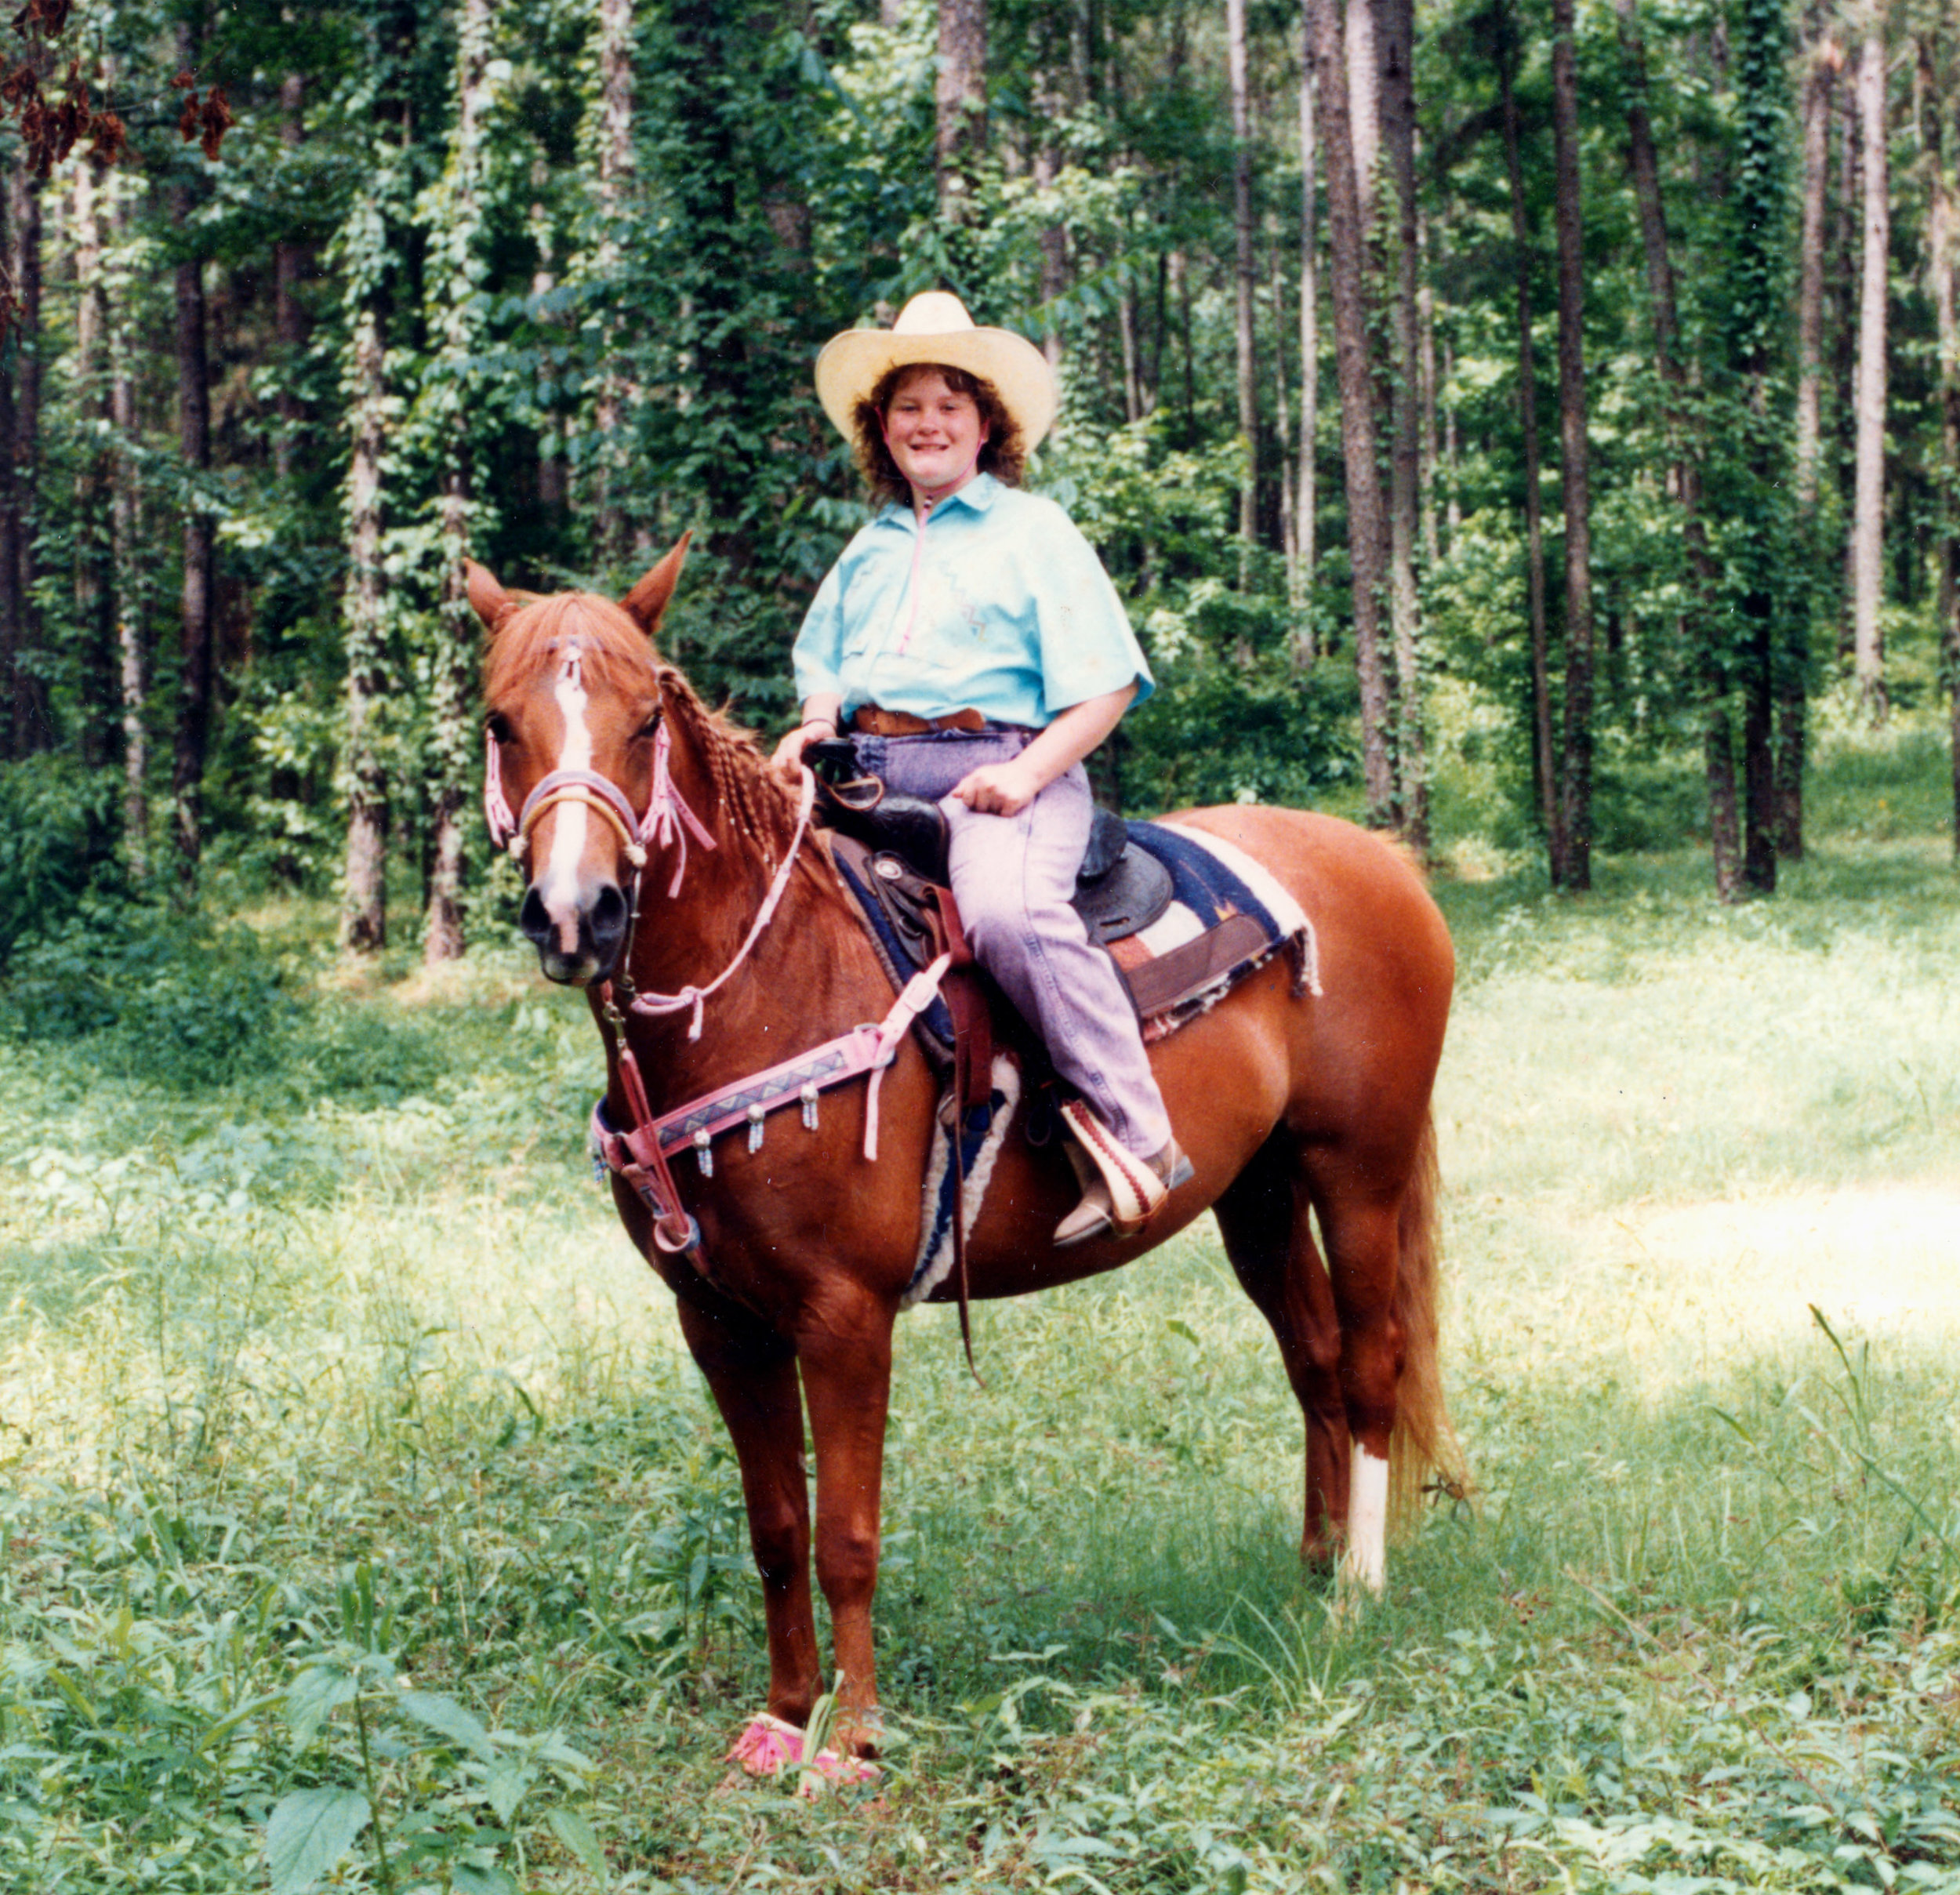 L on a Horse.jpg